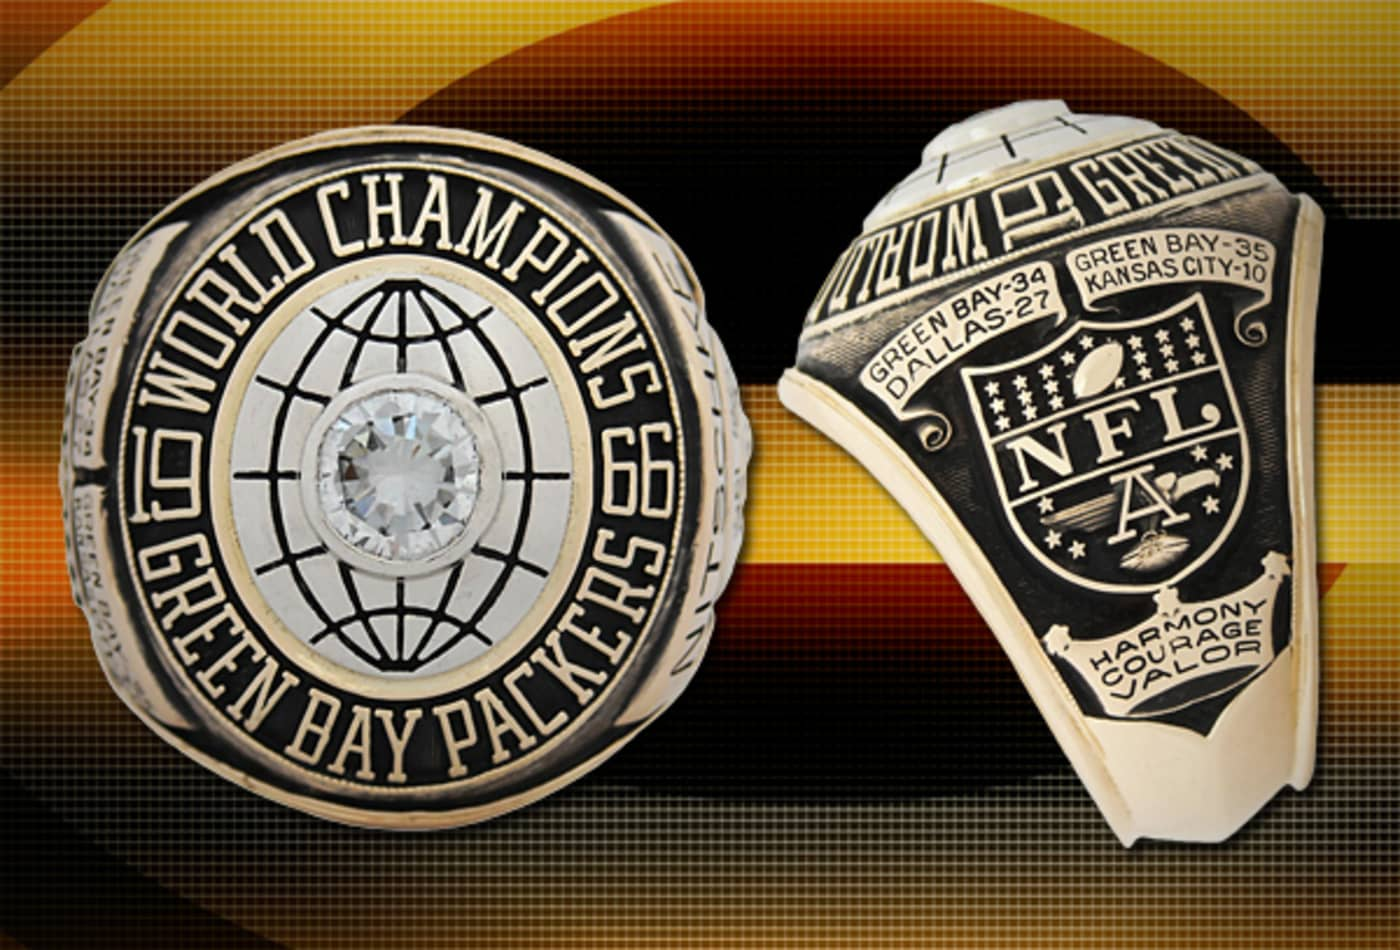 superbowl-rings-1966-greenbay-packers.jpg